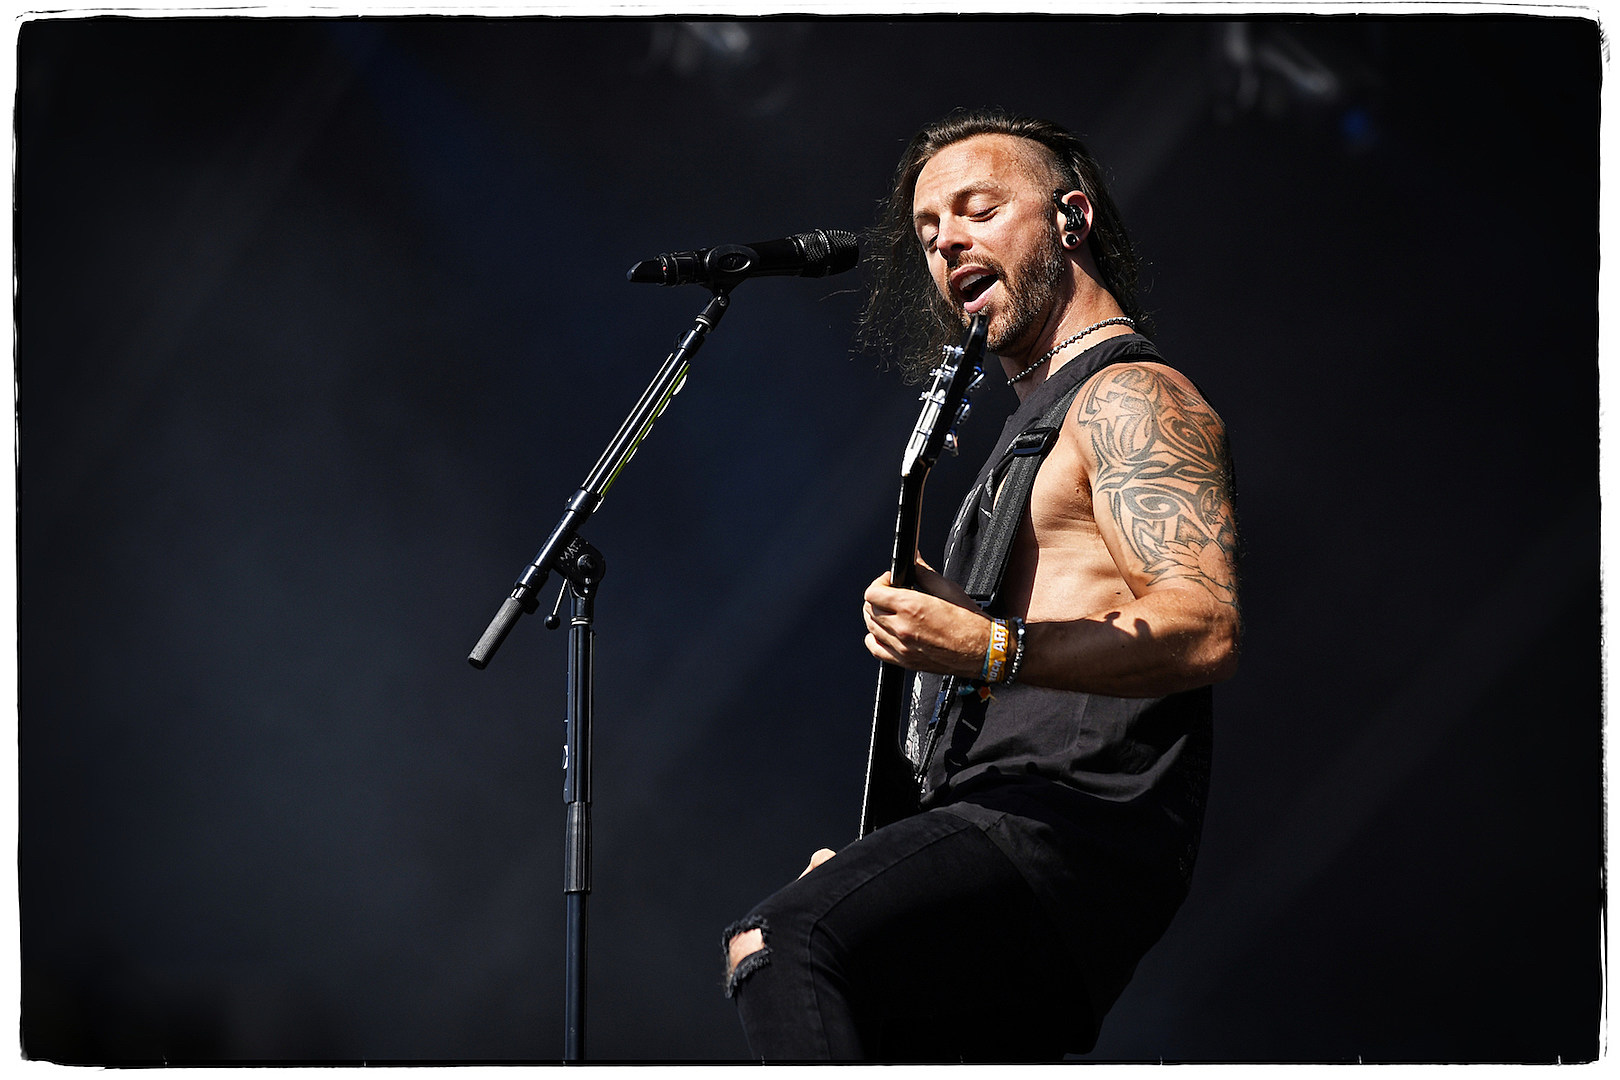 Bullet for My Valentine's Matt Tuck Would Like to See Metallica Cover Their Music